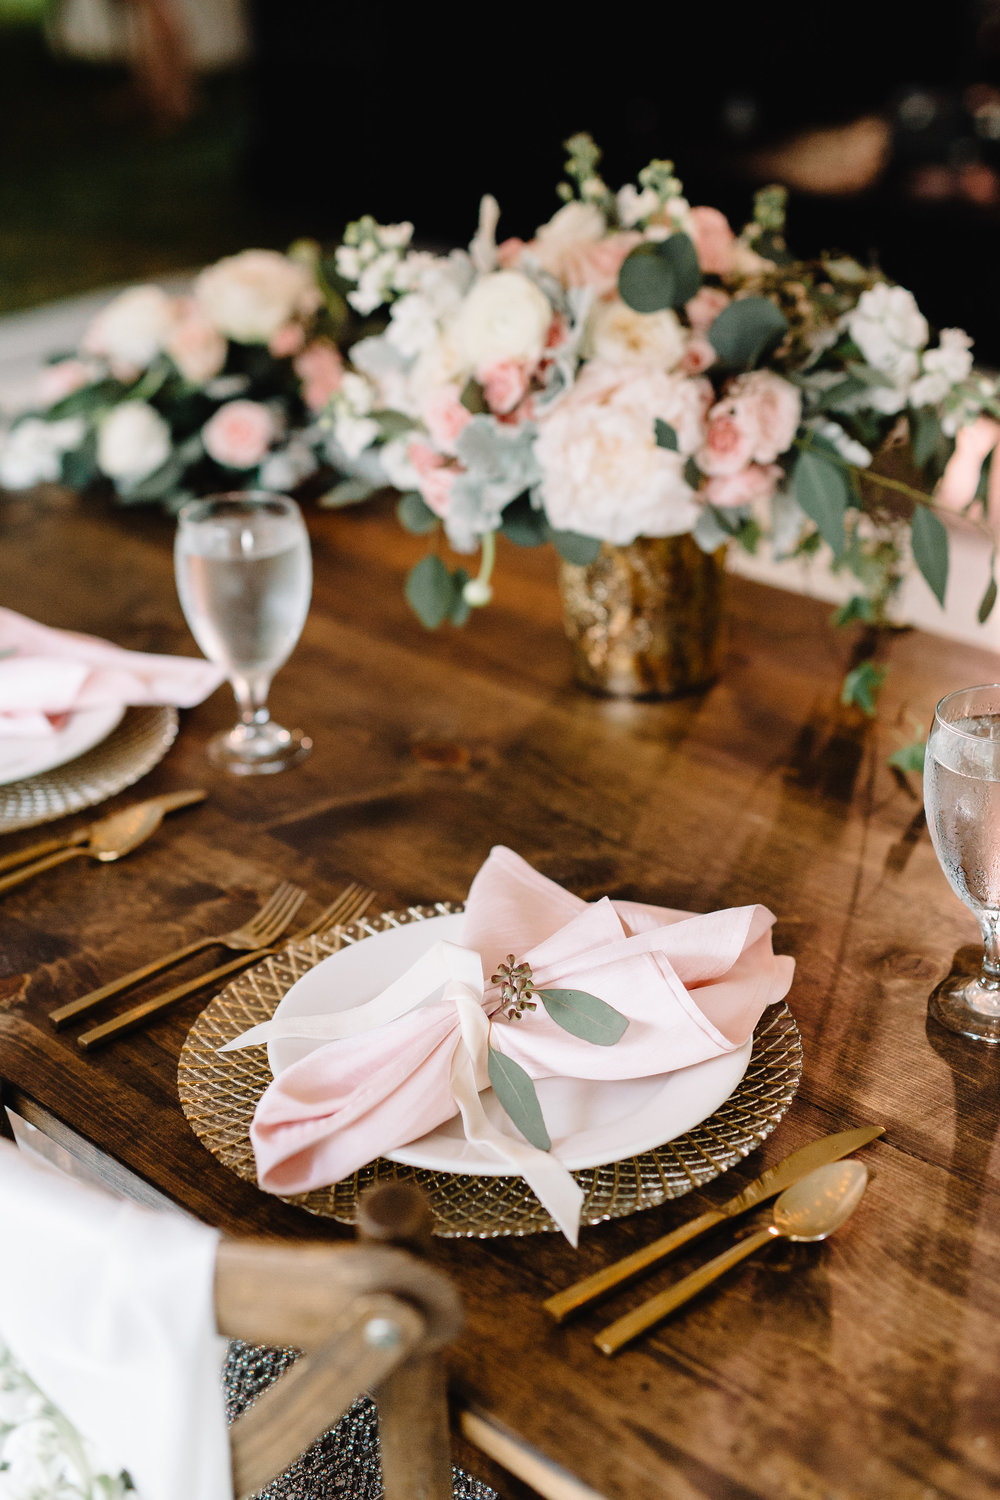 Blush & Gold Sweetheart Table at Cypress Grove Estate House  Orlando Wedding Florist Bluegrass Chic  Orlando Wedding Planner Blue Ribbon Weddings  Orlando Wedding Photographer JP Pratt Photography  Wedding Ceremony at Cypress Grove Estate House  Tented Lakeside Wedding Reception at Cypress Grove Estate House